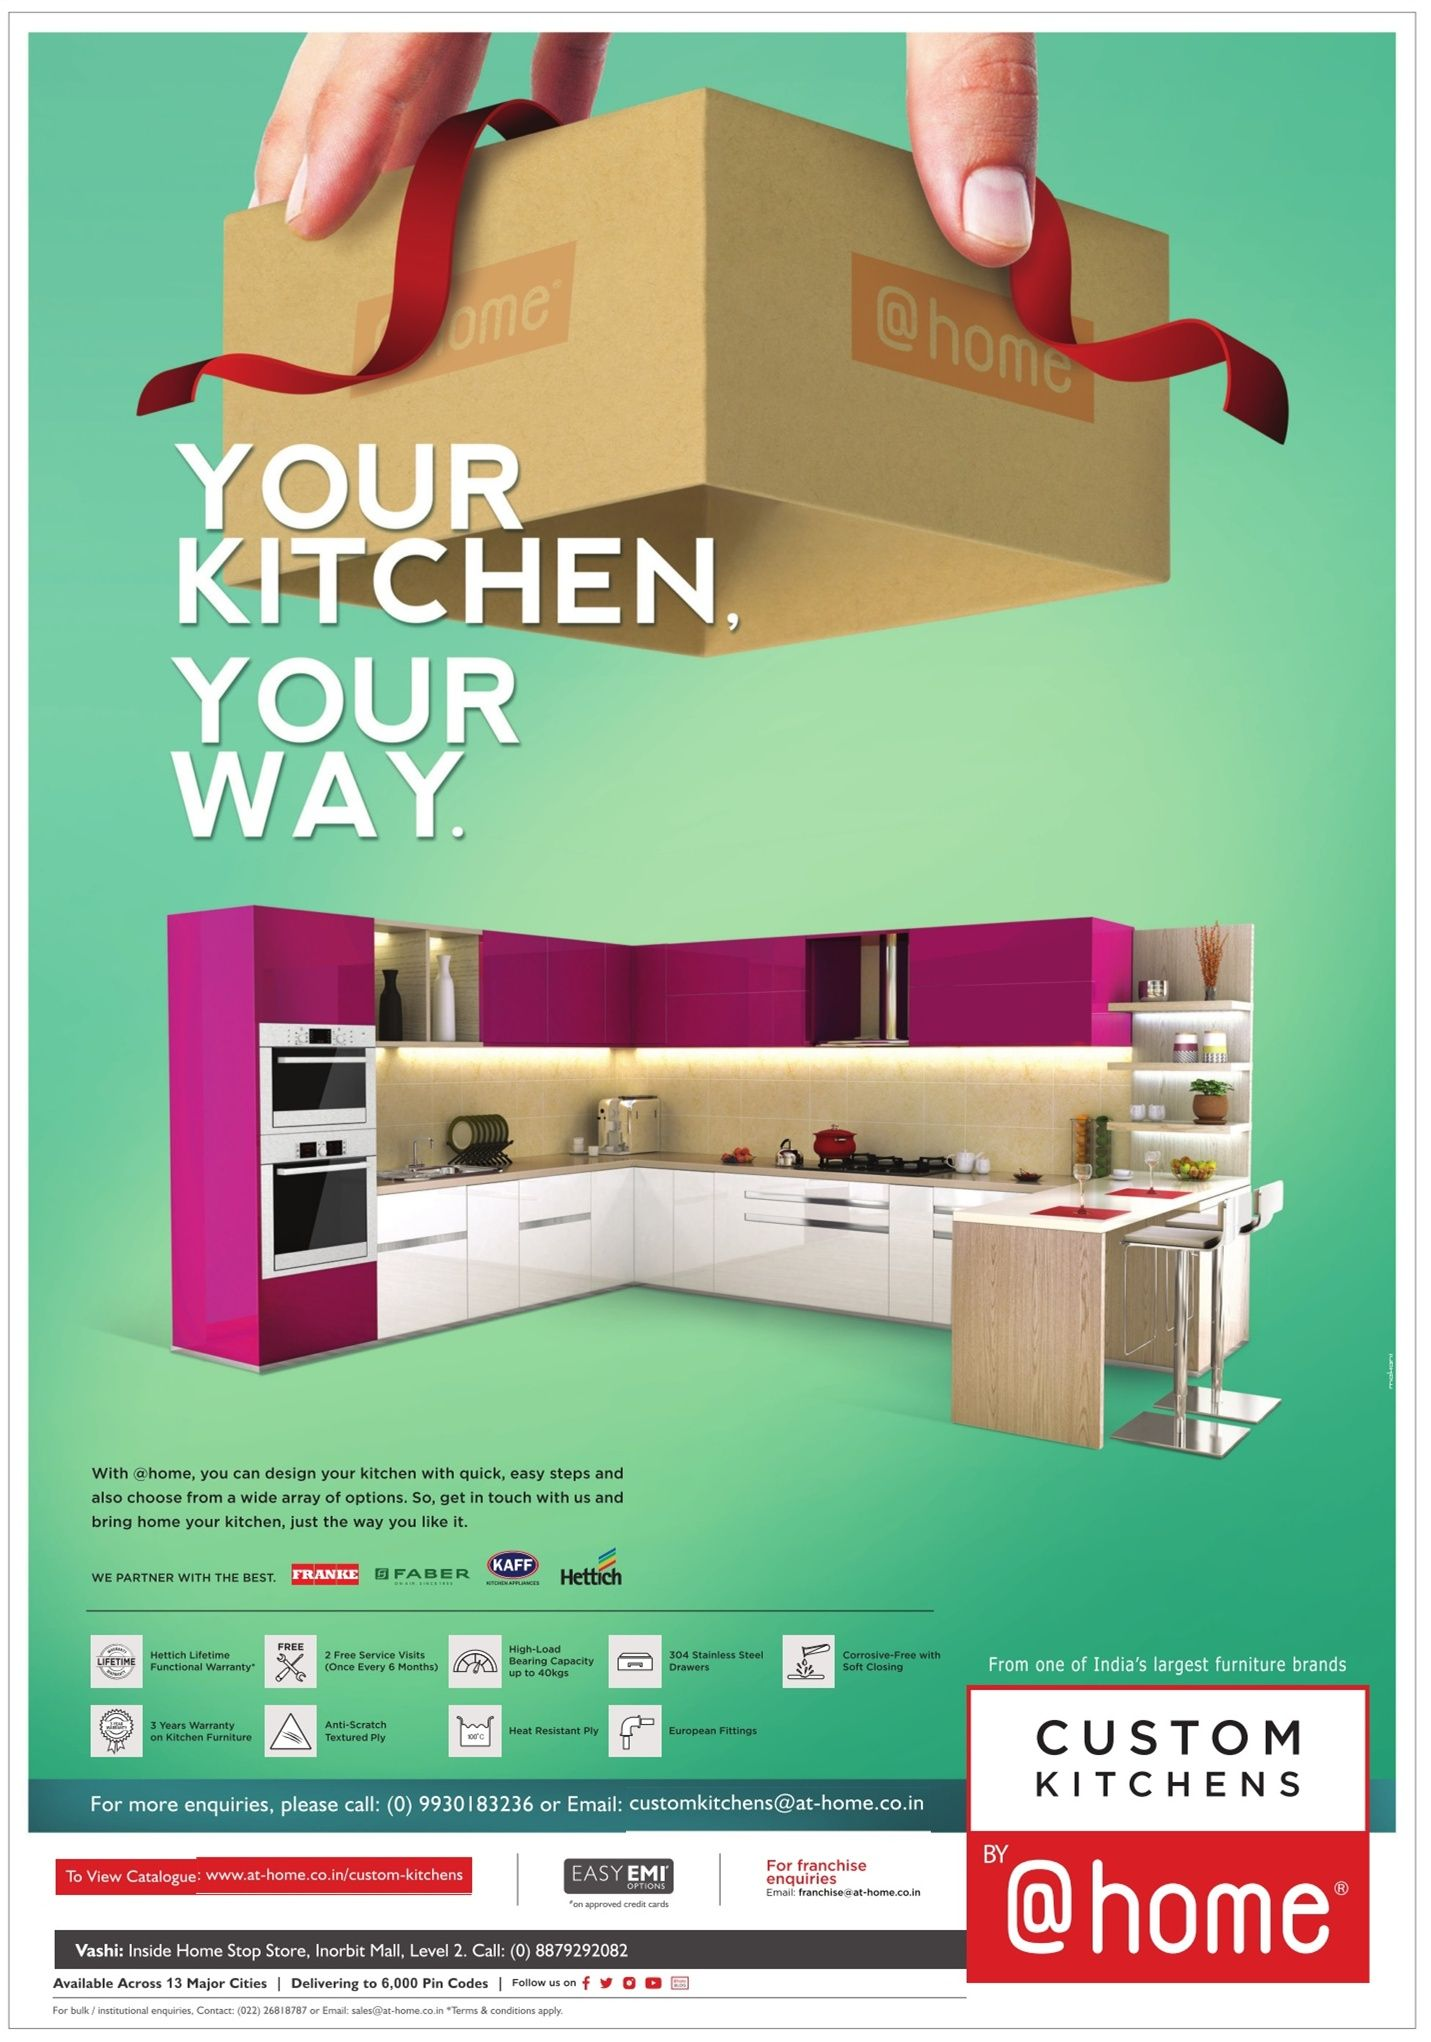 Custom Kitchens Home Your Kitchen Your Way Ad Property Times